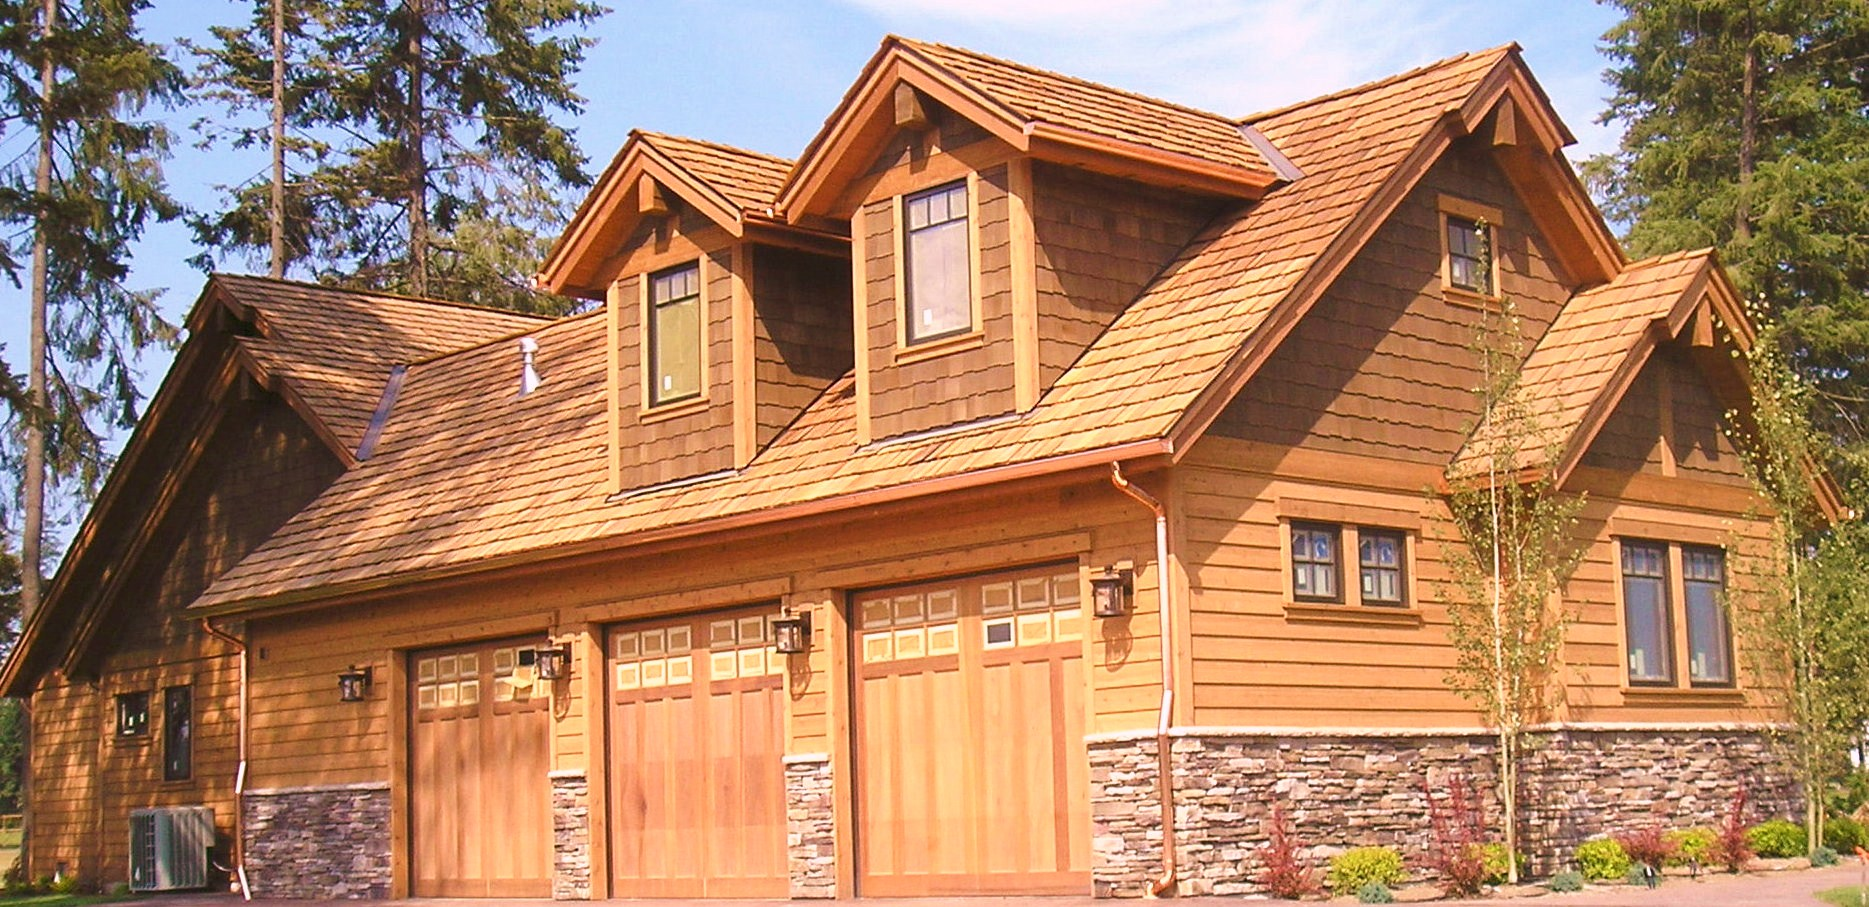 Virginia roofing siding company cedar siding for Pictures of home